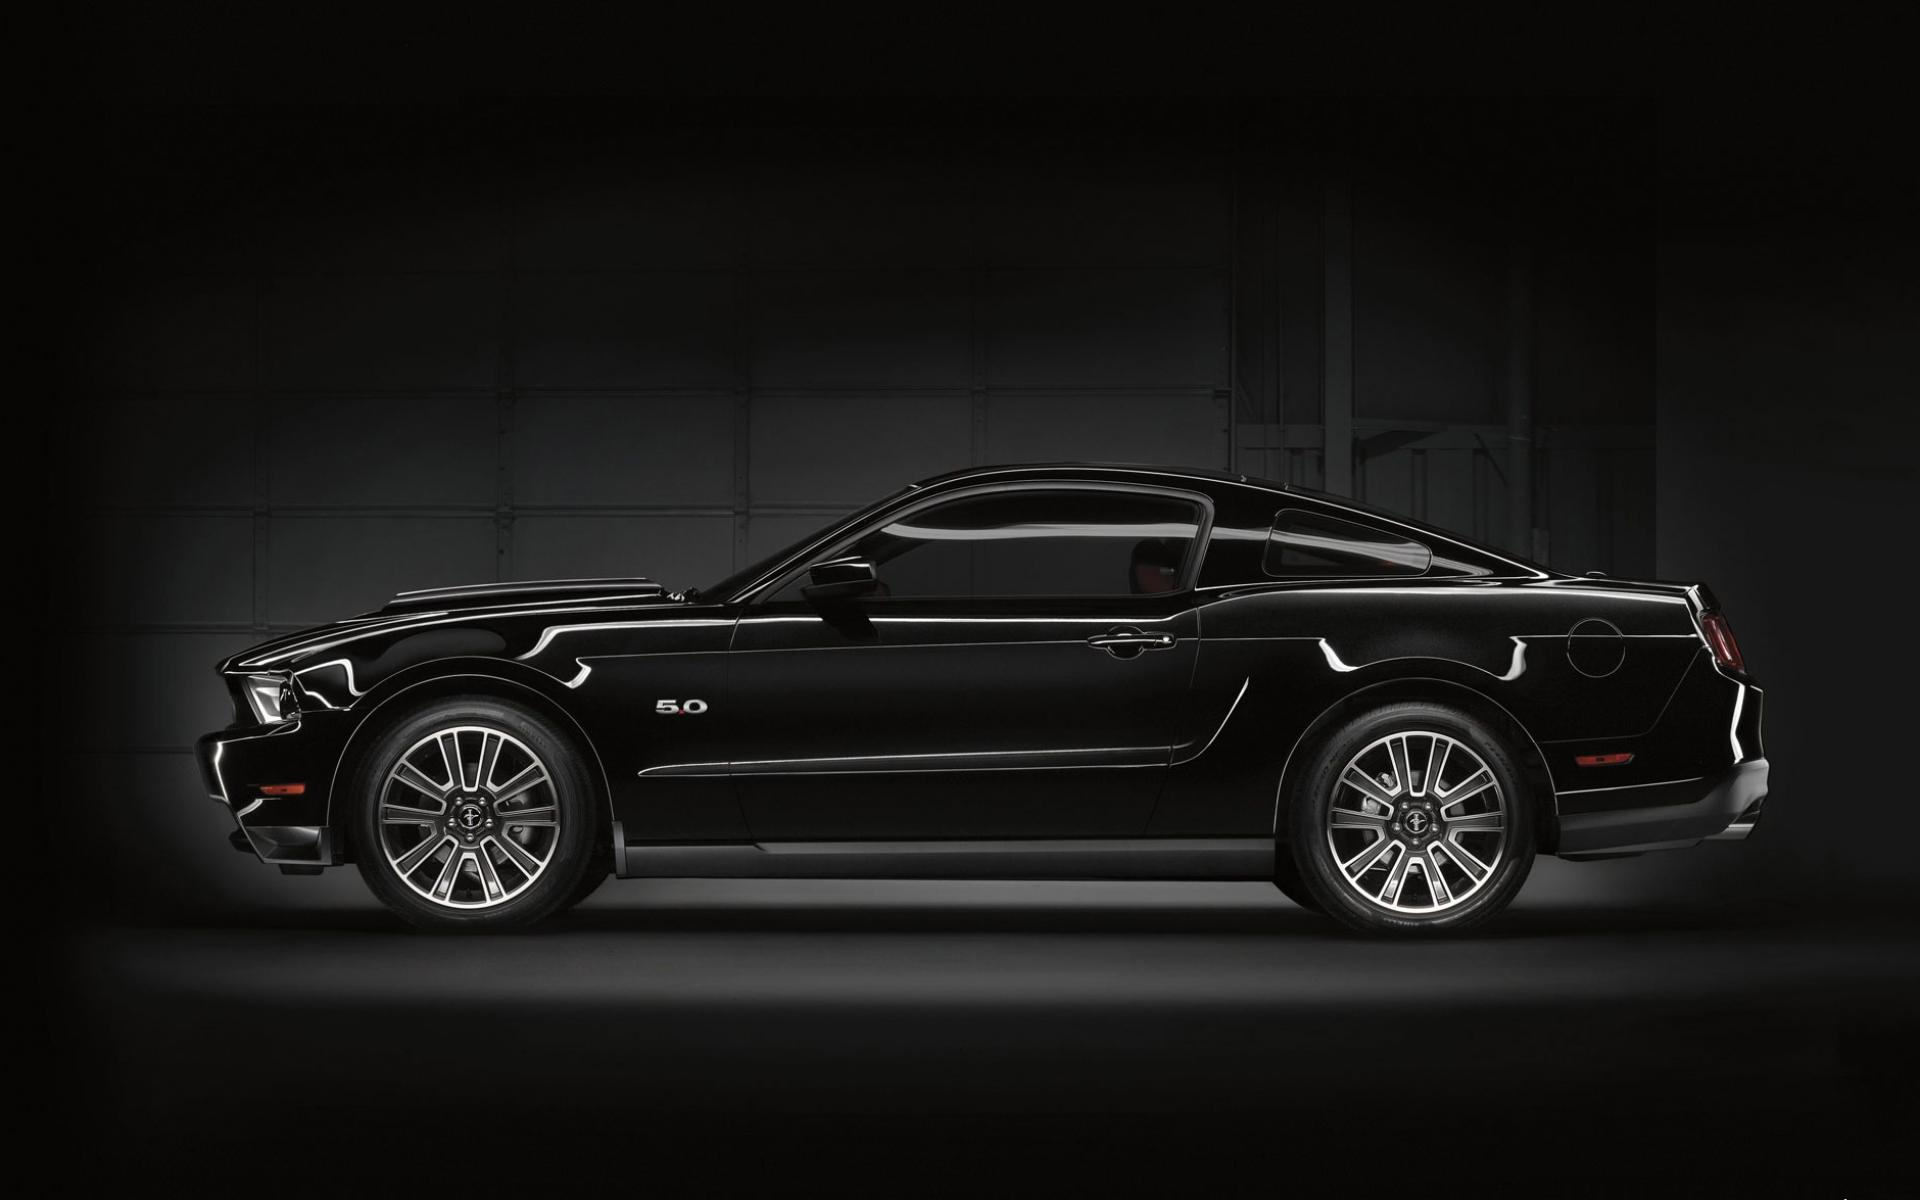 Обои Ford Mustang GT 5.0 1920x1200